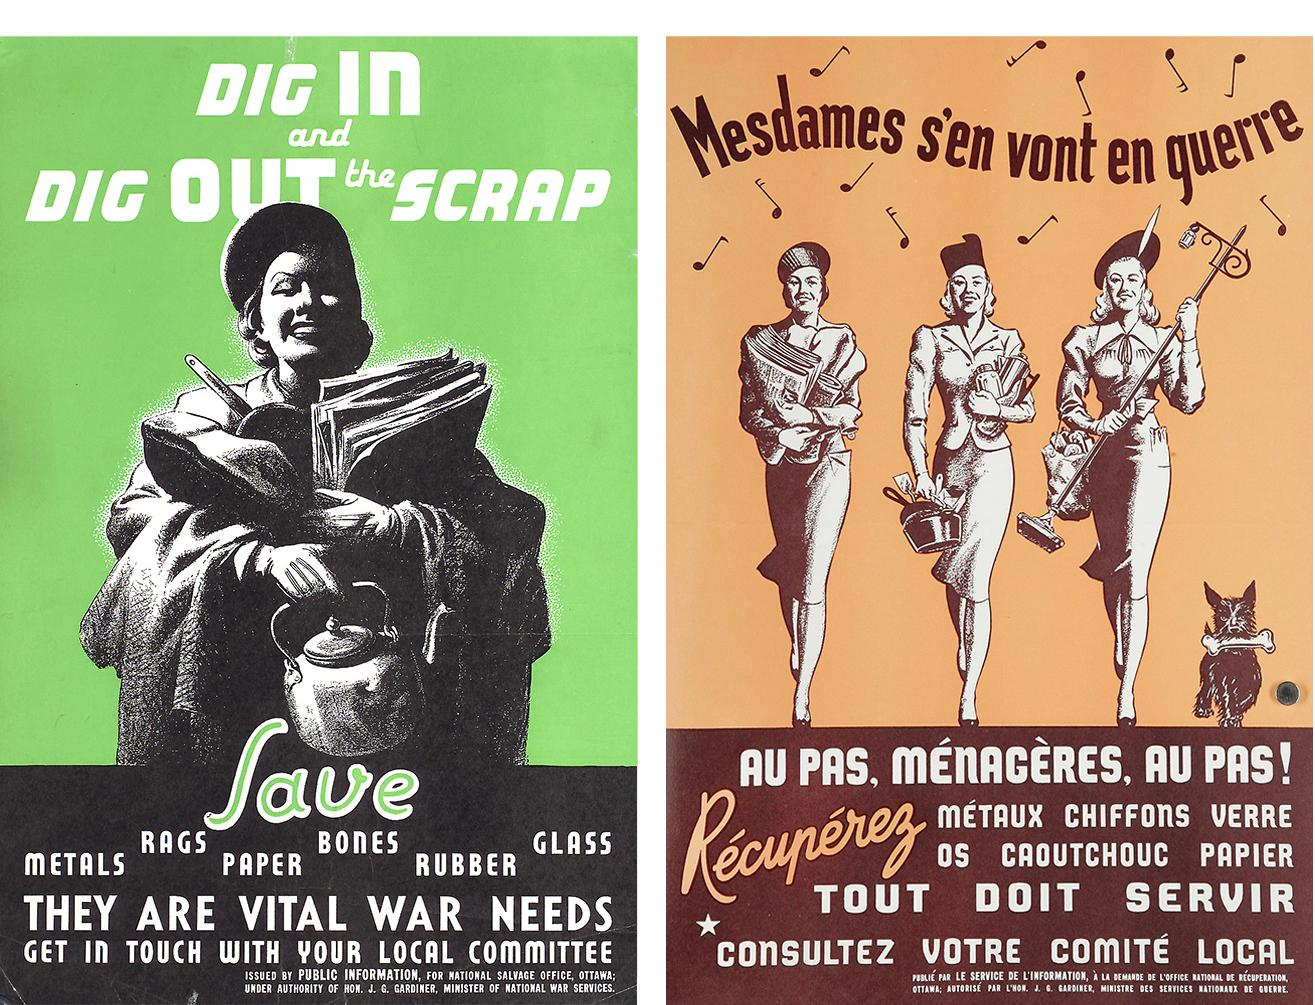 Posters, one French, one English, both featuring women carrying old household items and paper.